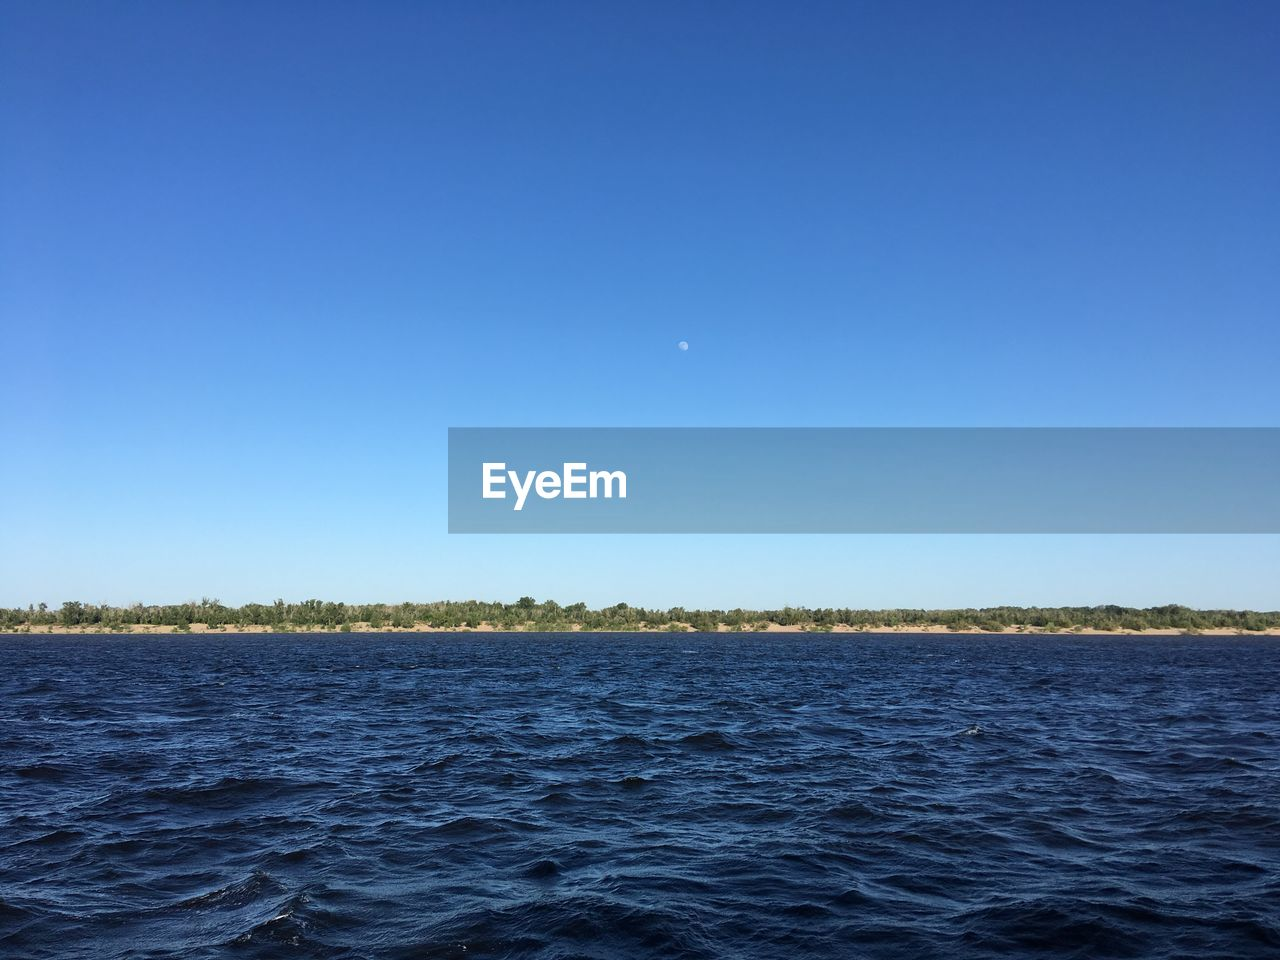 sky, water, blue, clear sky, tranquil scene, tranquility, copy space, beauty in nature, scenics - nature, waterfront, sea, nature, no people, moon, non-urban scene, idyllic, outdoors, day